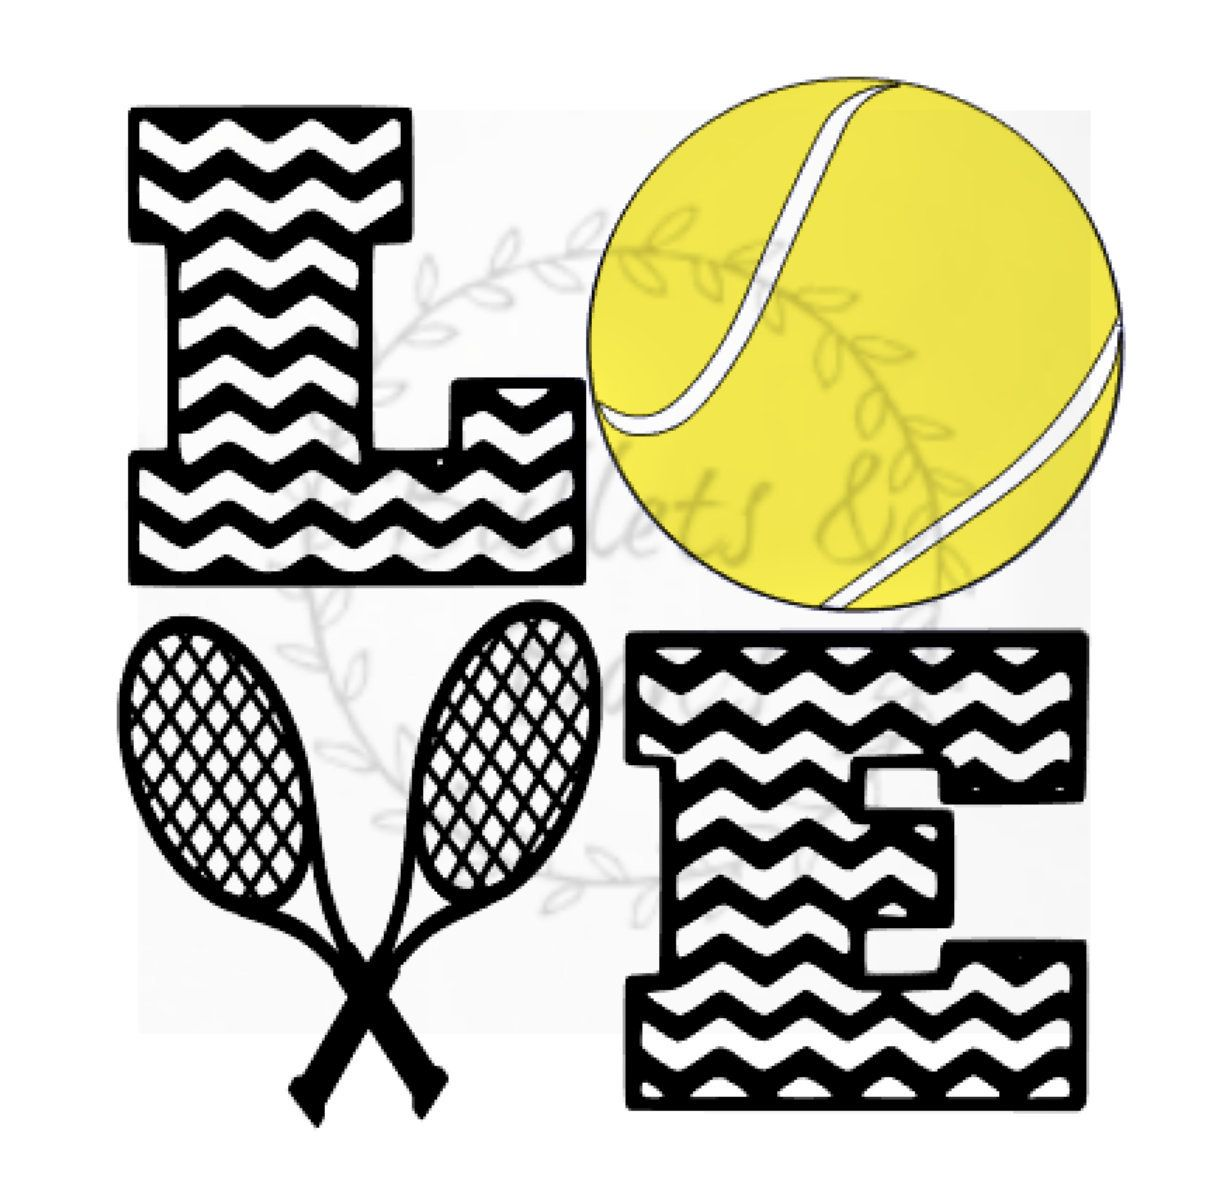 Download Tennis Love Svg | Svg, Things to sell, Make and sell